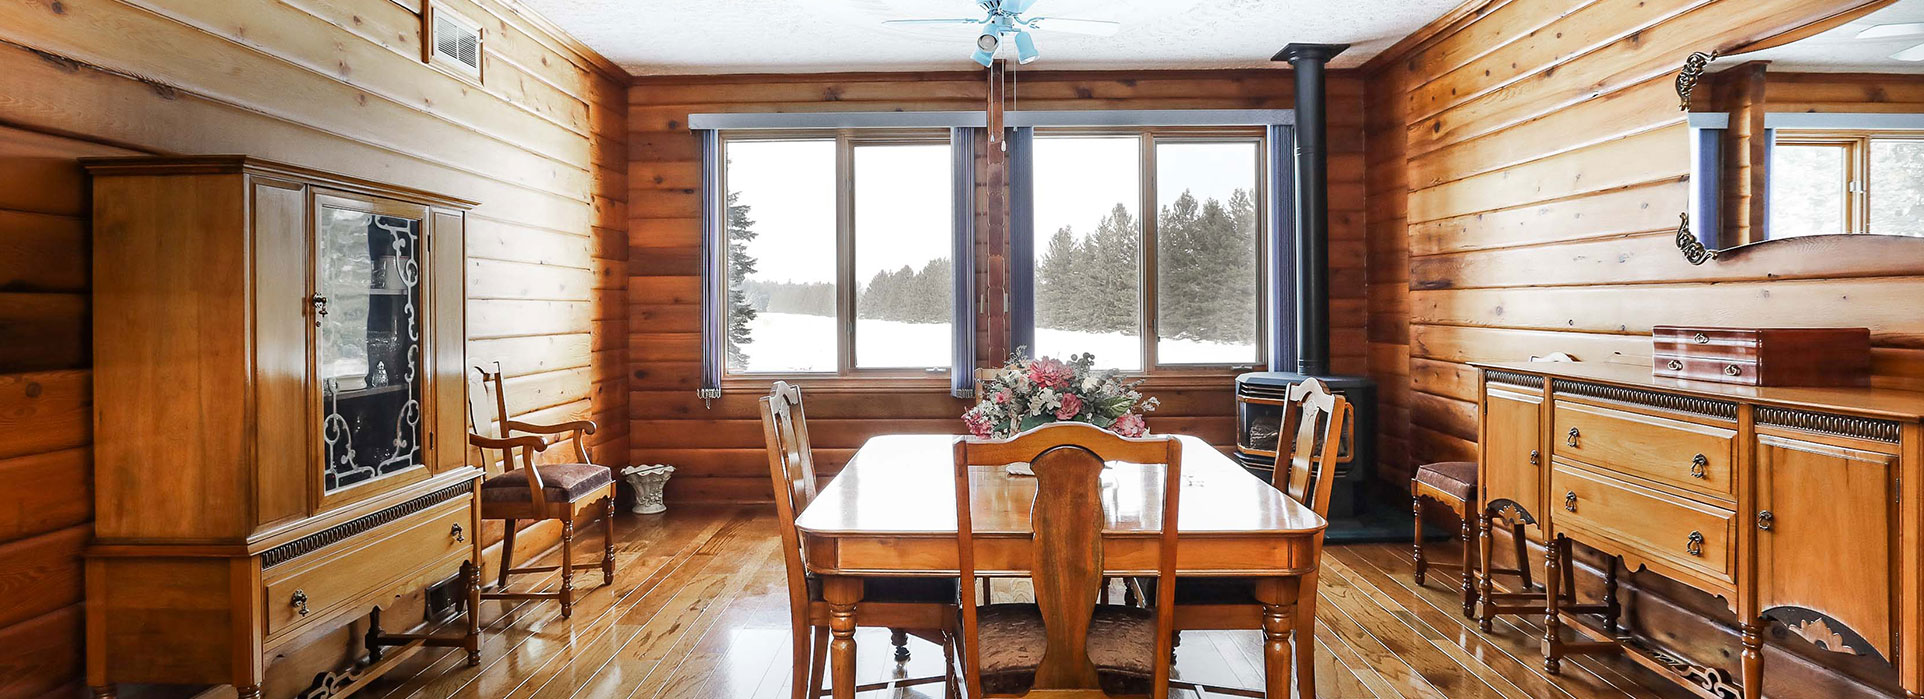 5870 Concession 2 - Dining Room & Big Windows - Cripps Realty